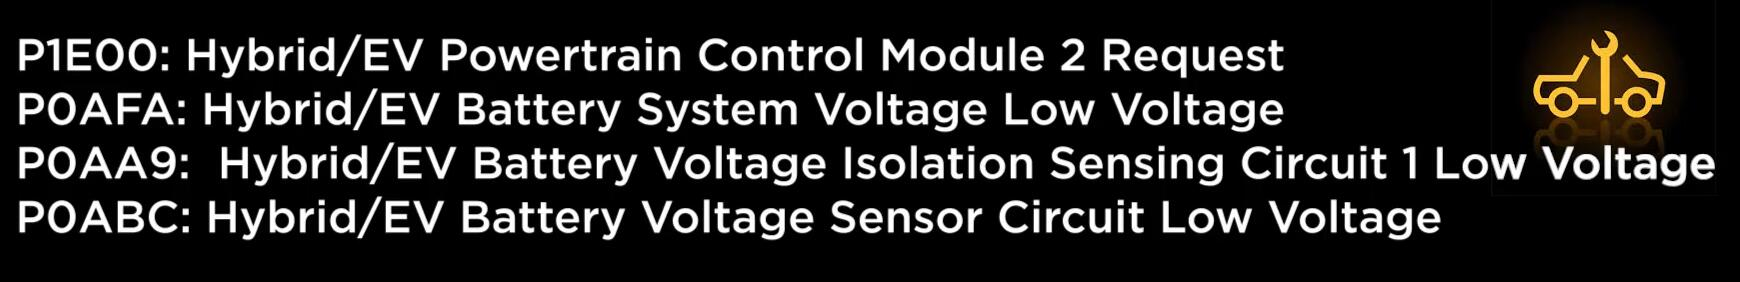 Clear-Secured-High-Voltage-DTCs-by-G-Scan-for-Chevrolet-Bolt-EV-6